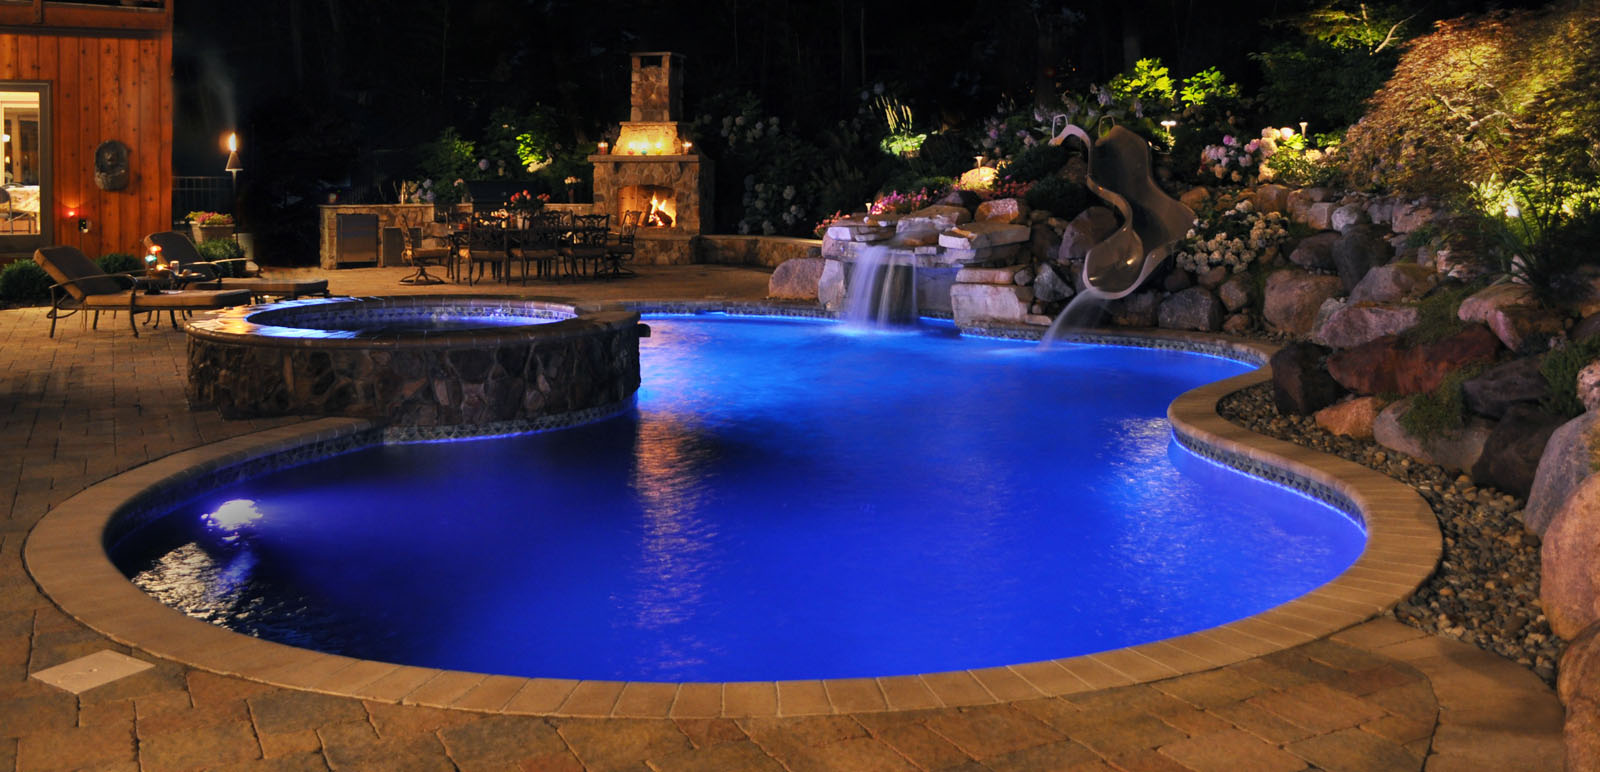 landscape lighting with uplighting and pool lights